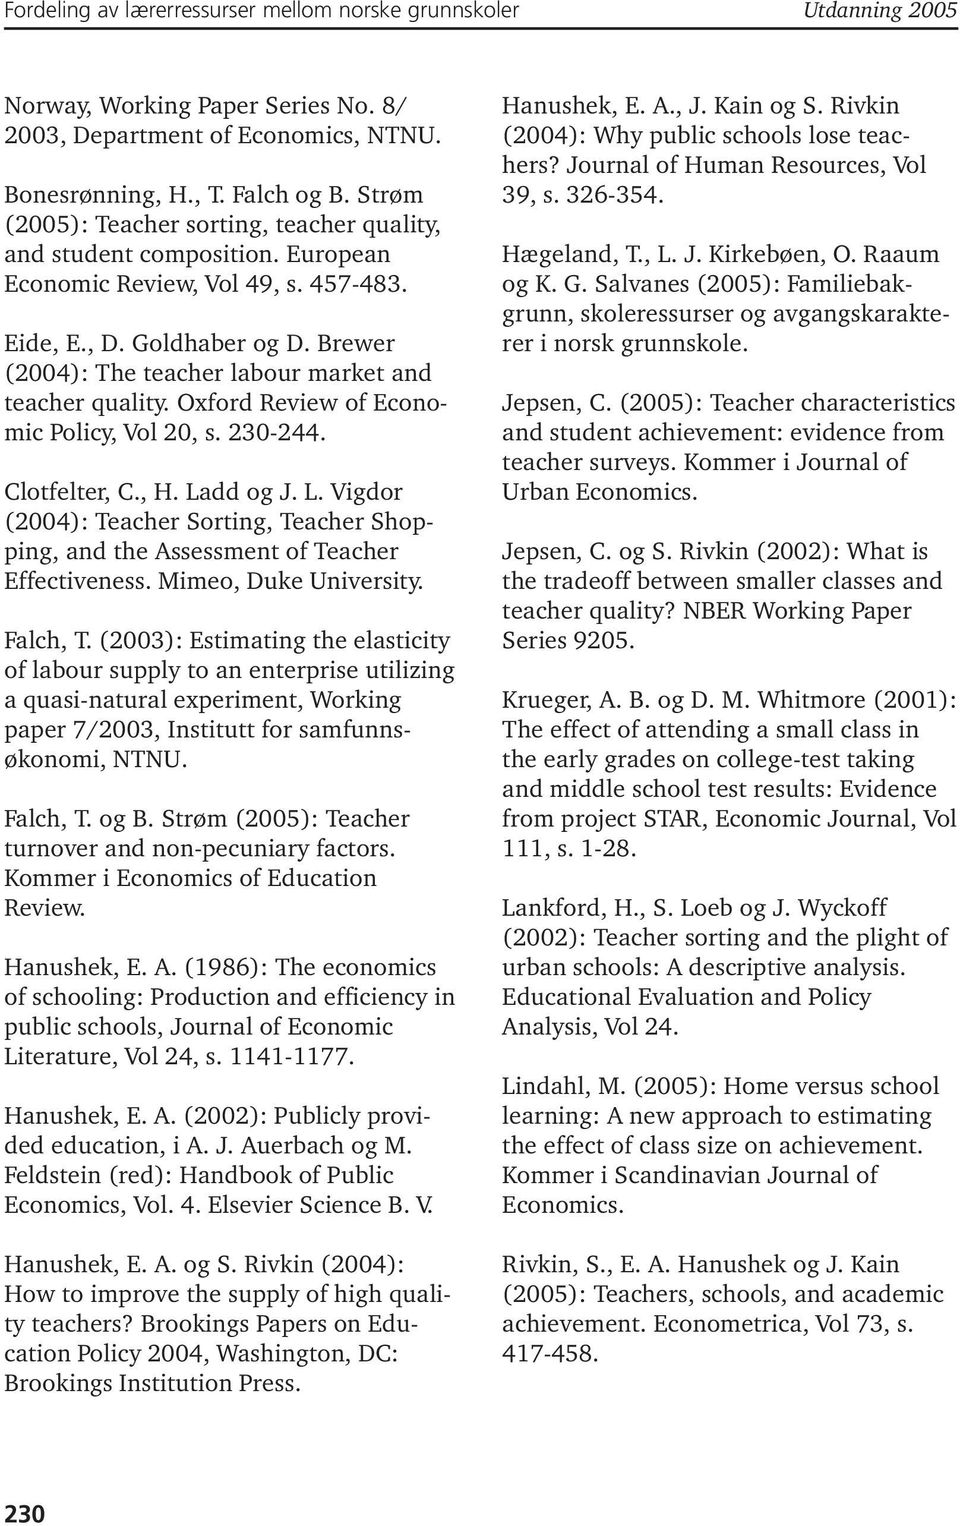 Brewer (2004): The teacher labour market and teacher quality. Oxford Review of Economic Policy, Vol 20, s. 230-244. Clotfelter, C., H. La